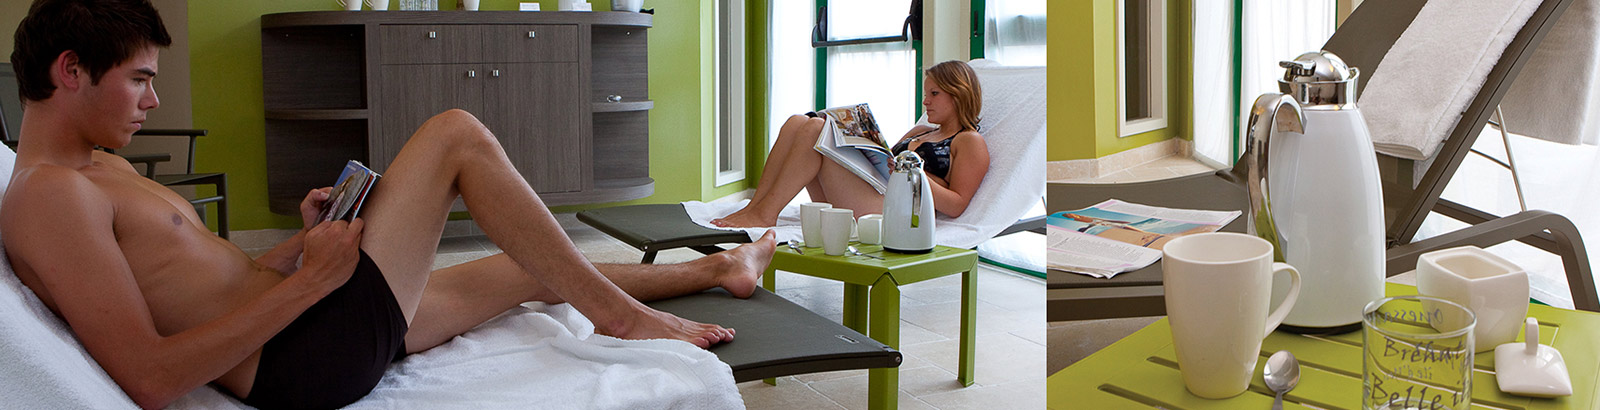 Unwind during a relaxing moment in the Spa